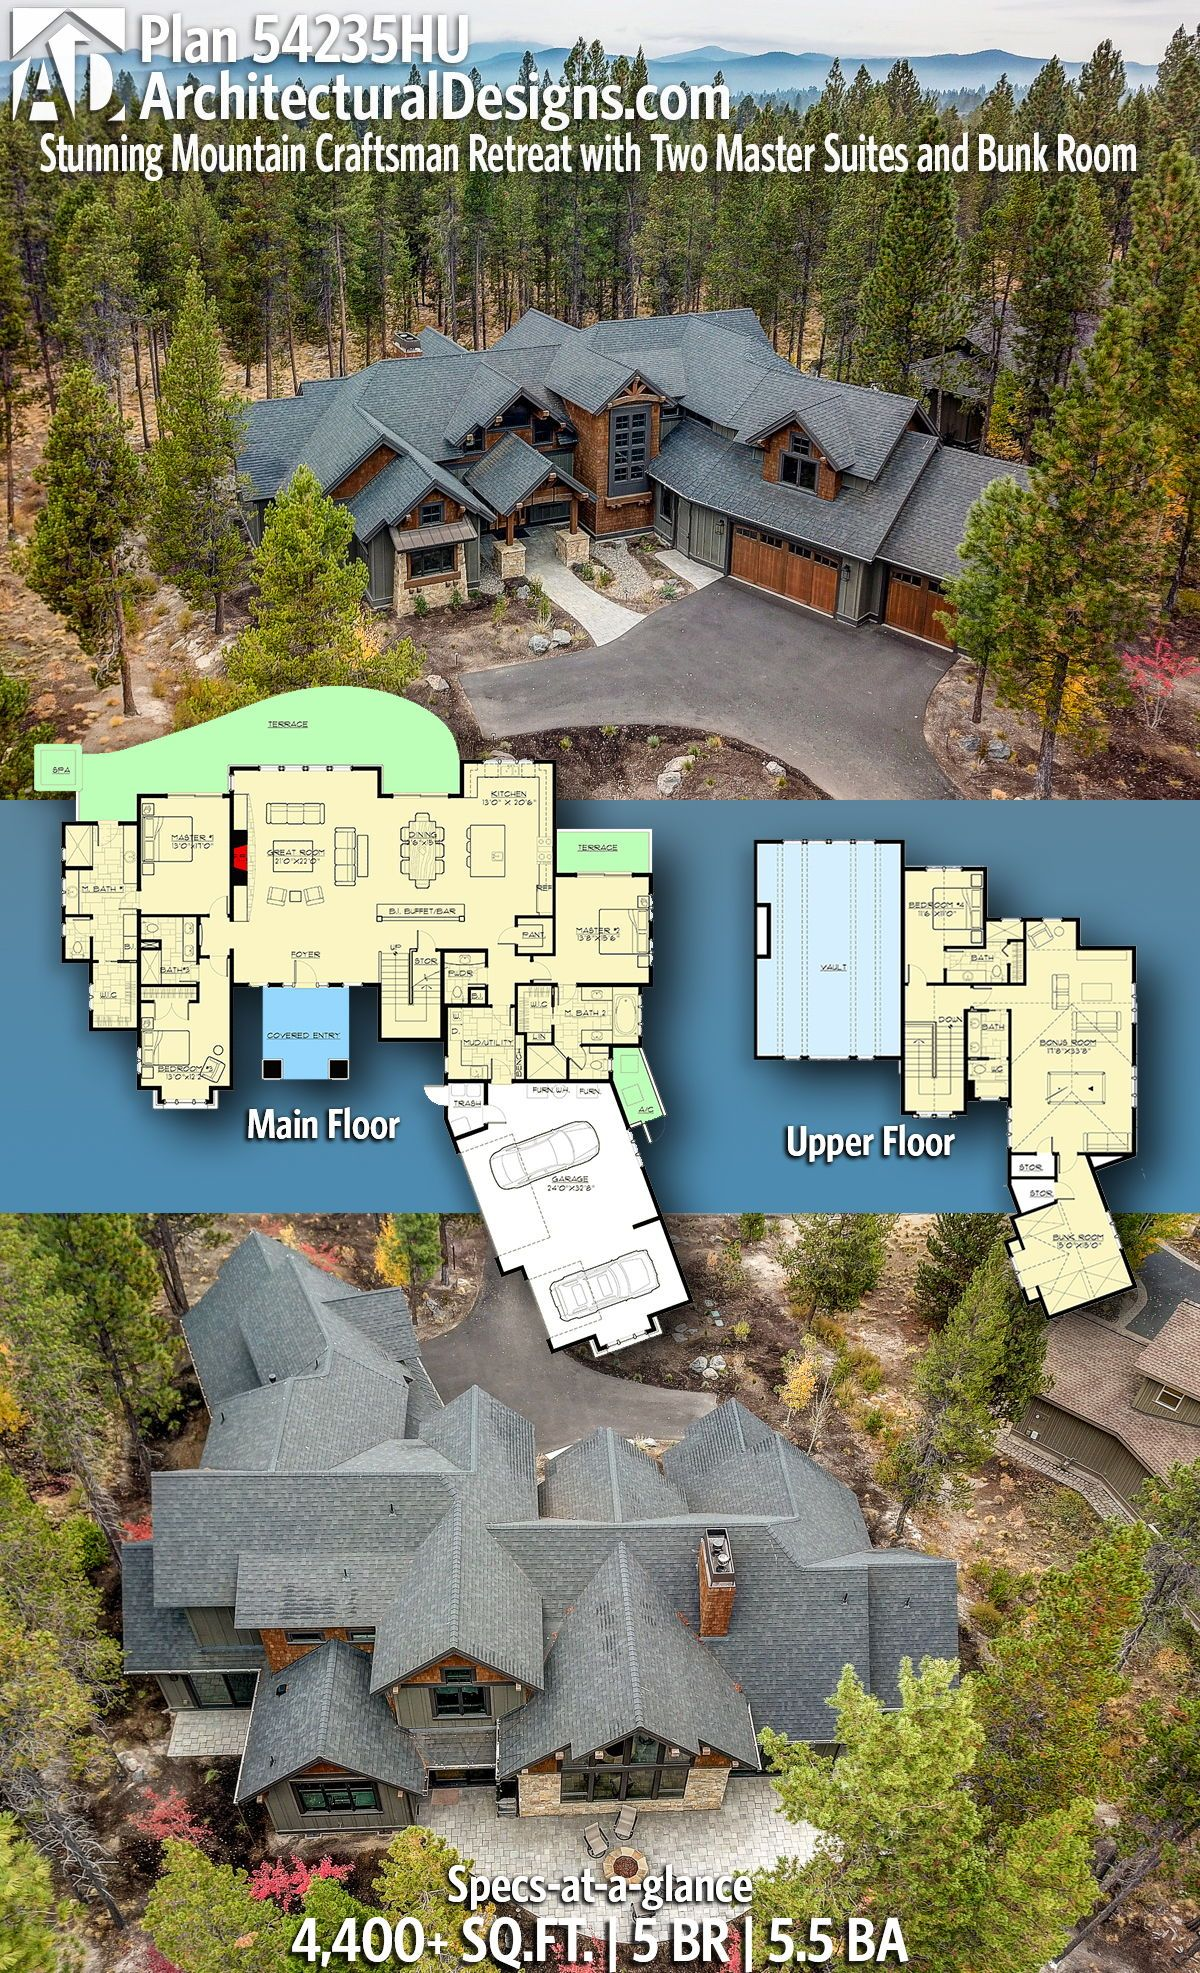 Architectural Design Rugged And Rustic House Plan 54235hu